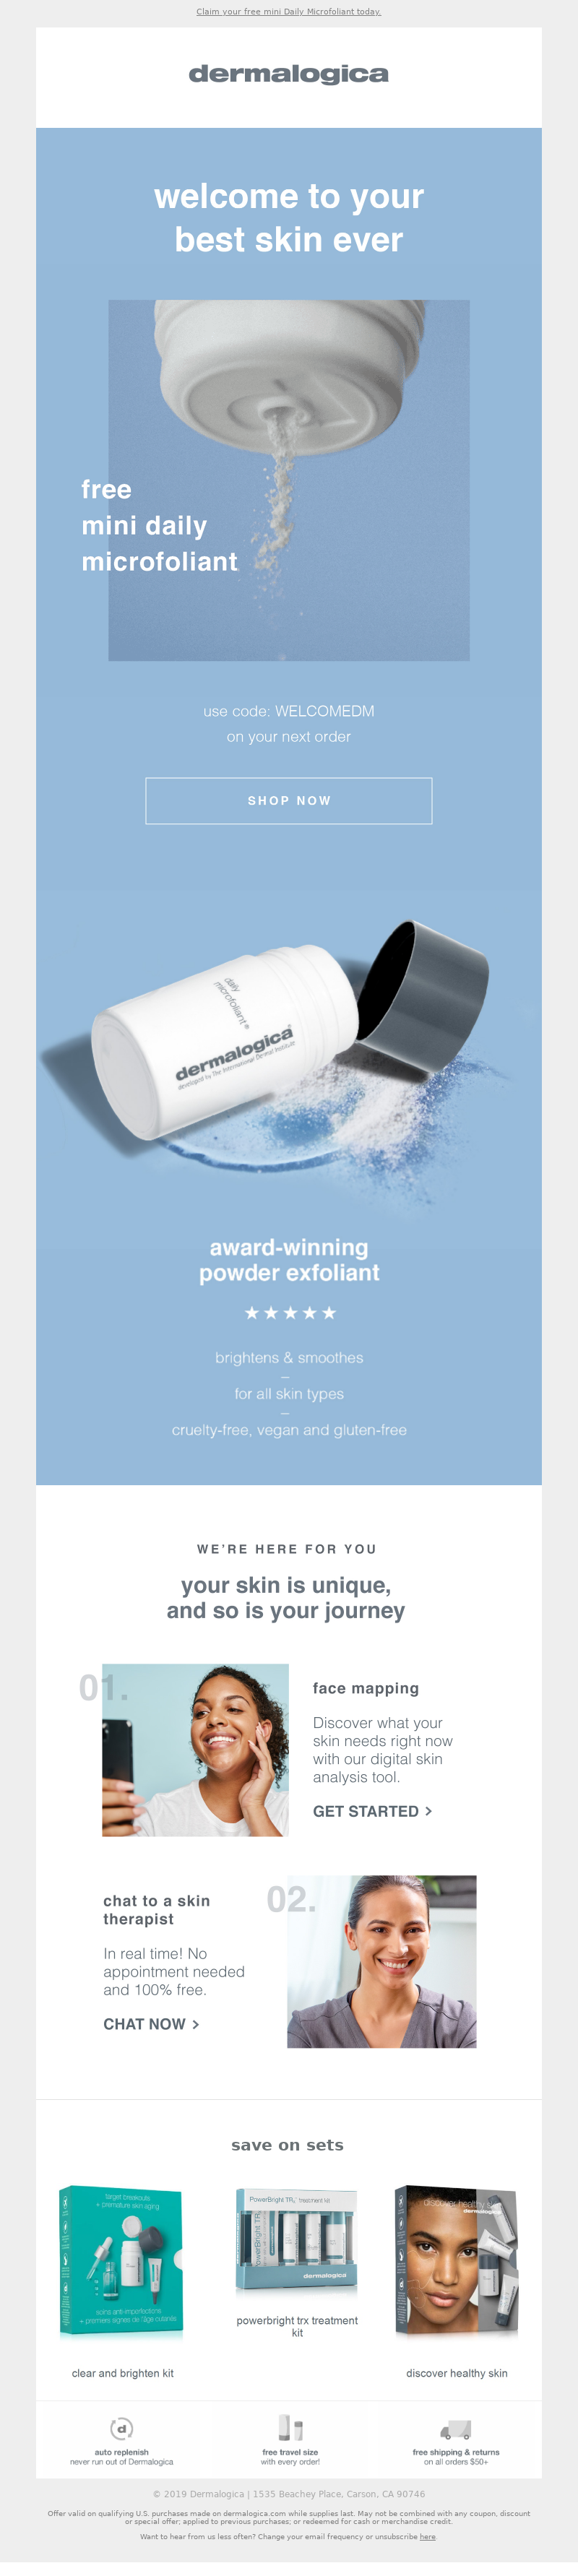 Welcome email example from Dermalogica